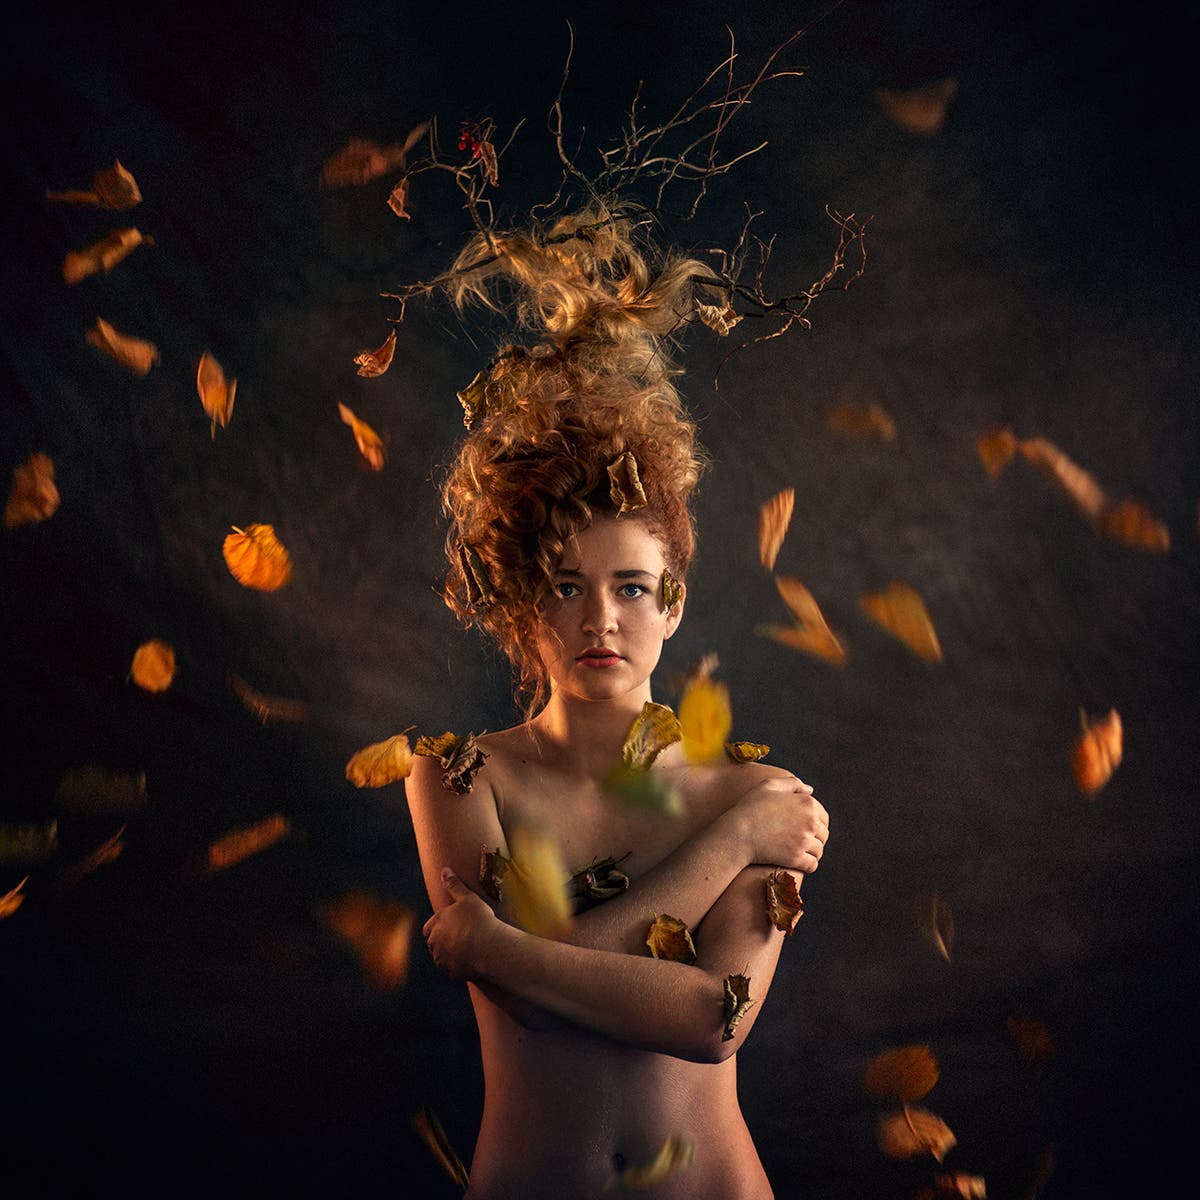 Michal Zahornacky's Telling and Surreal Portraits (NSFW)